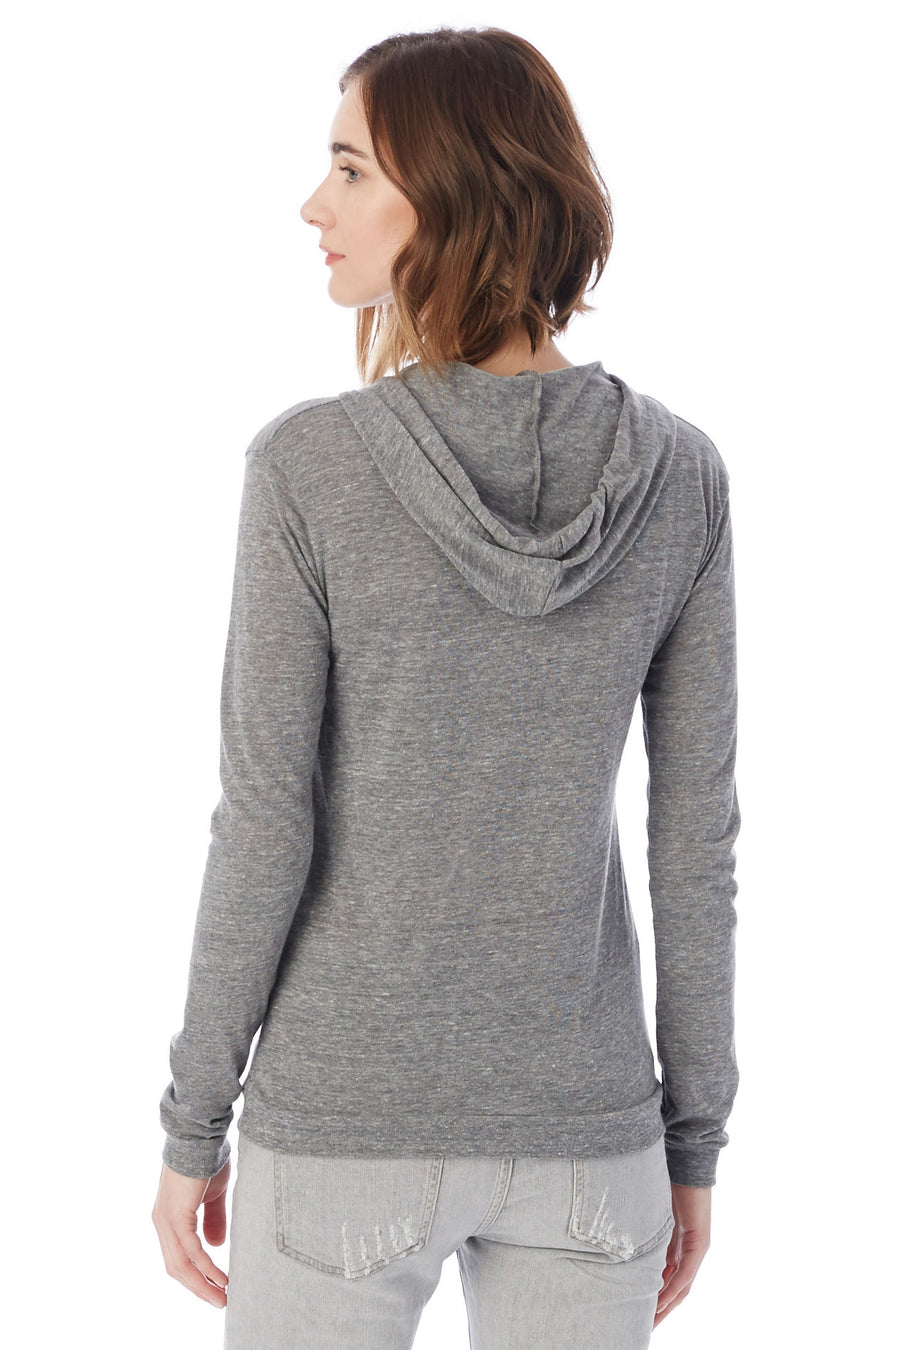 Classic Pullover - Eco Grey - Pavilion